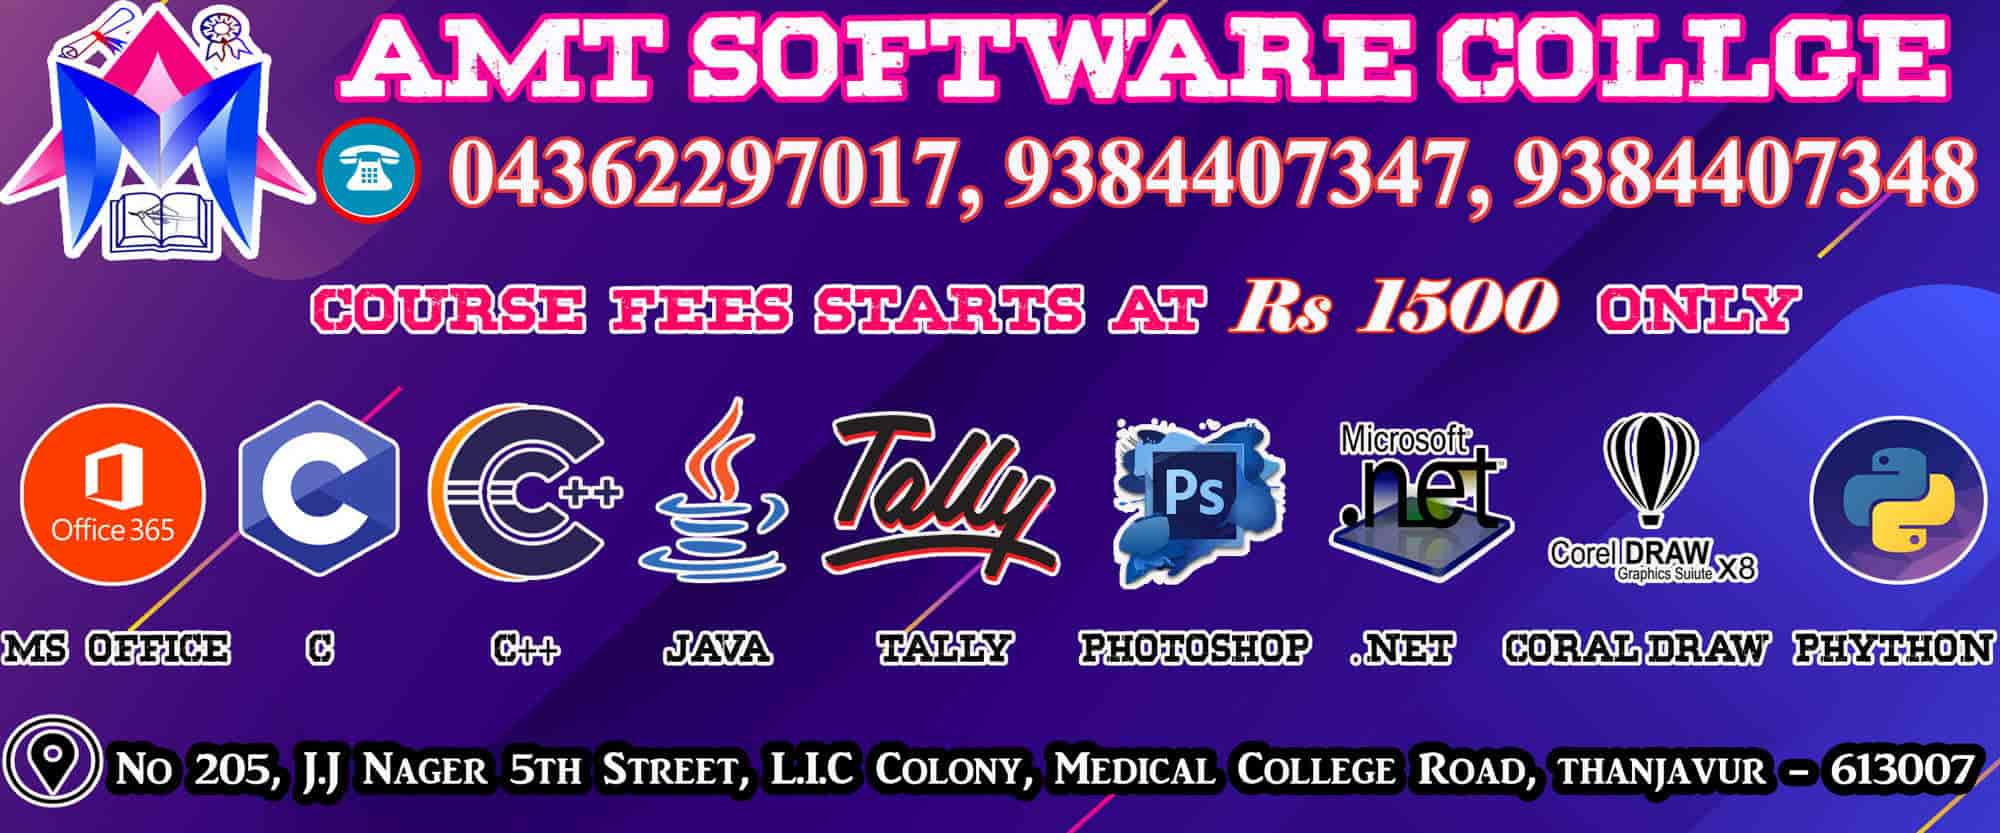 AMT Software college Photos, , Thanjavur- Pictures & Images Gallery